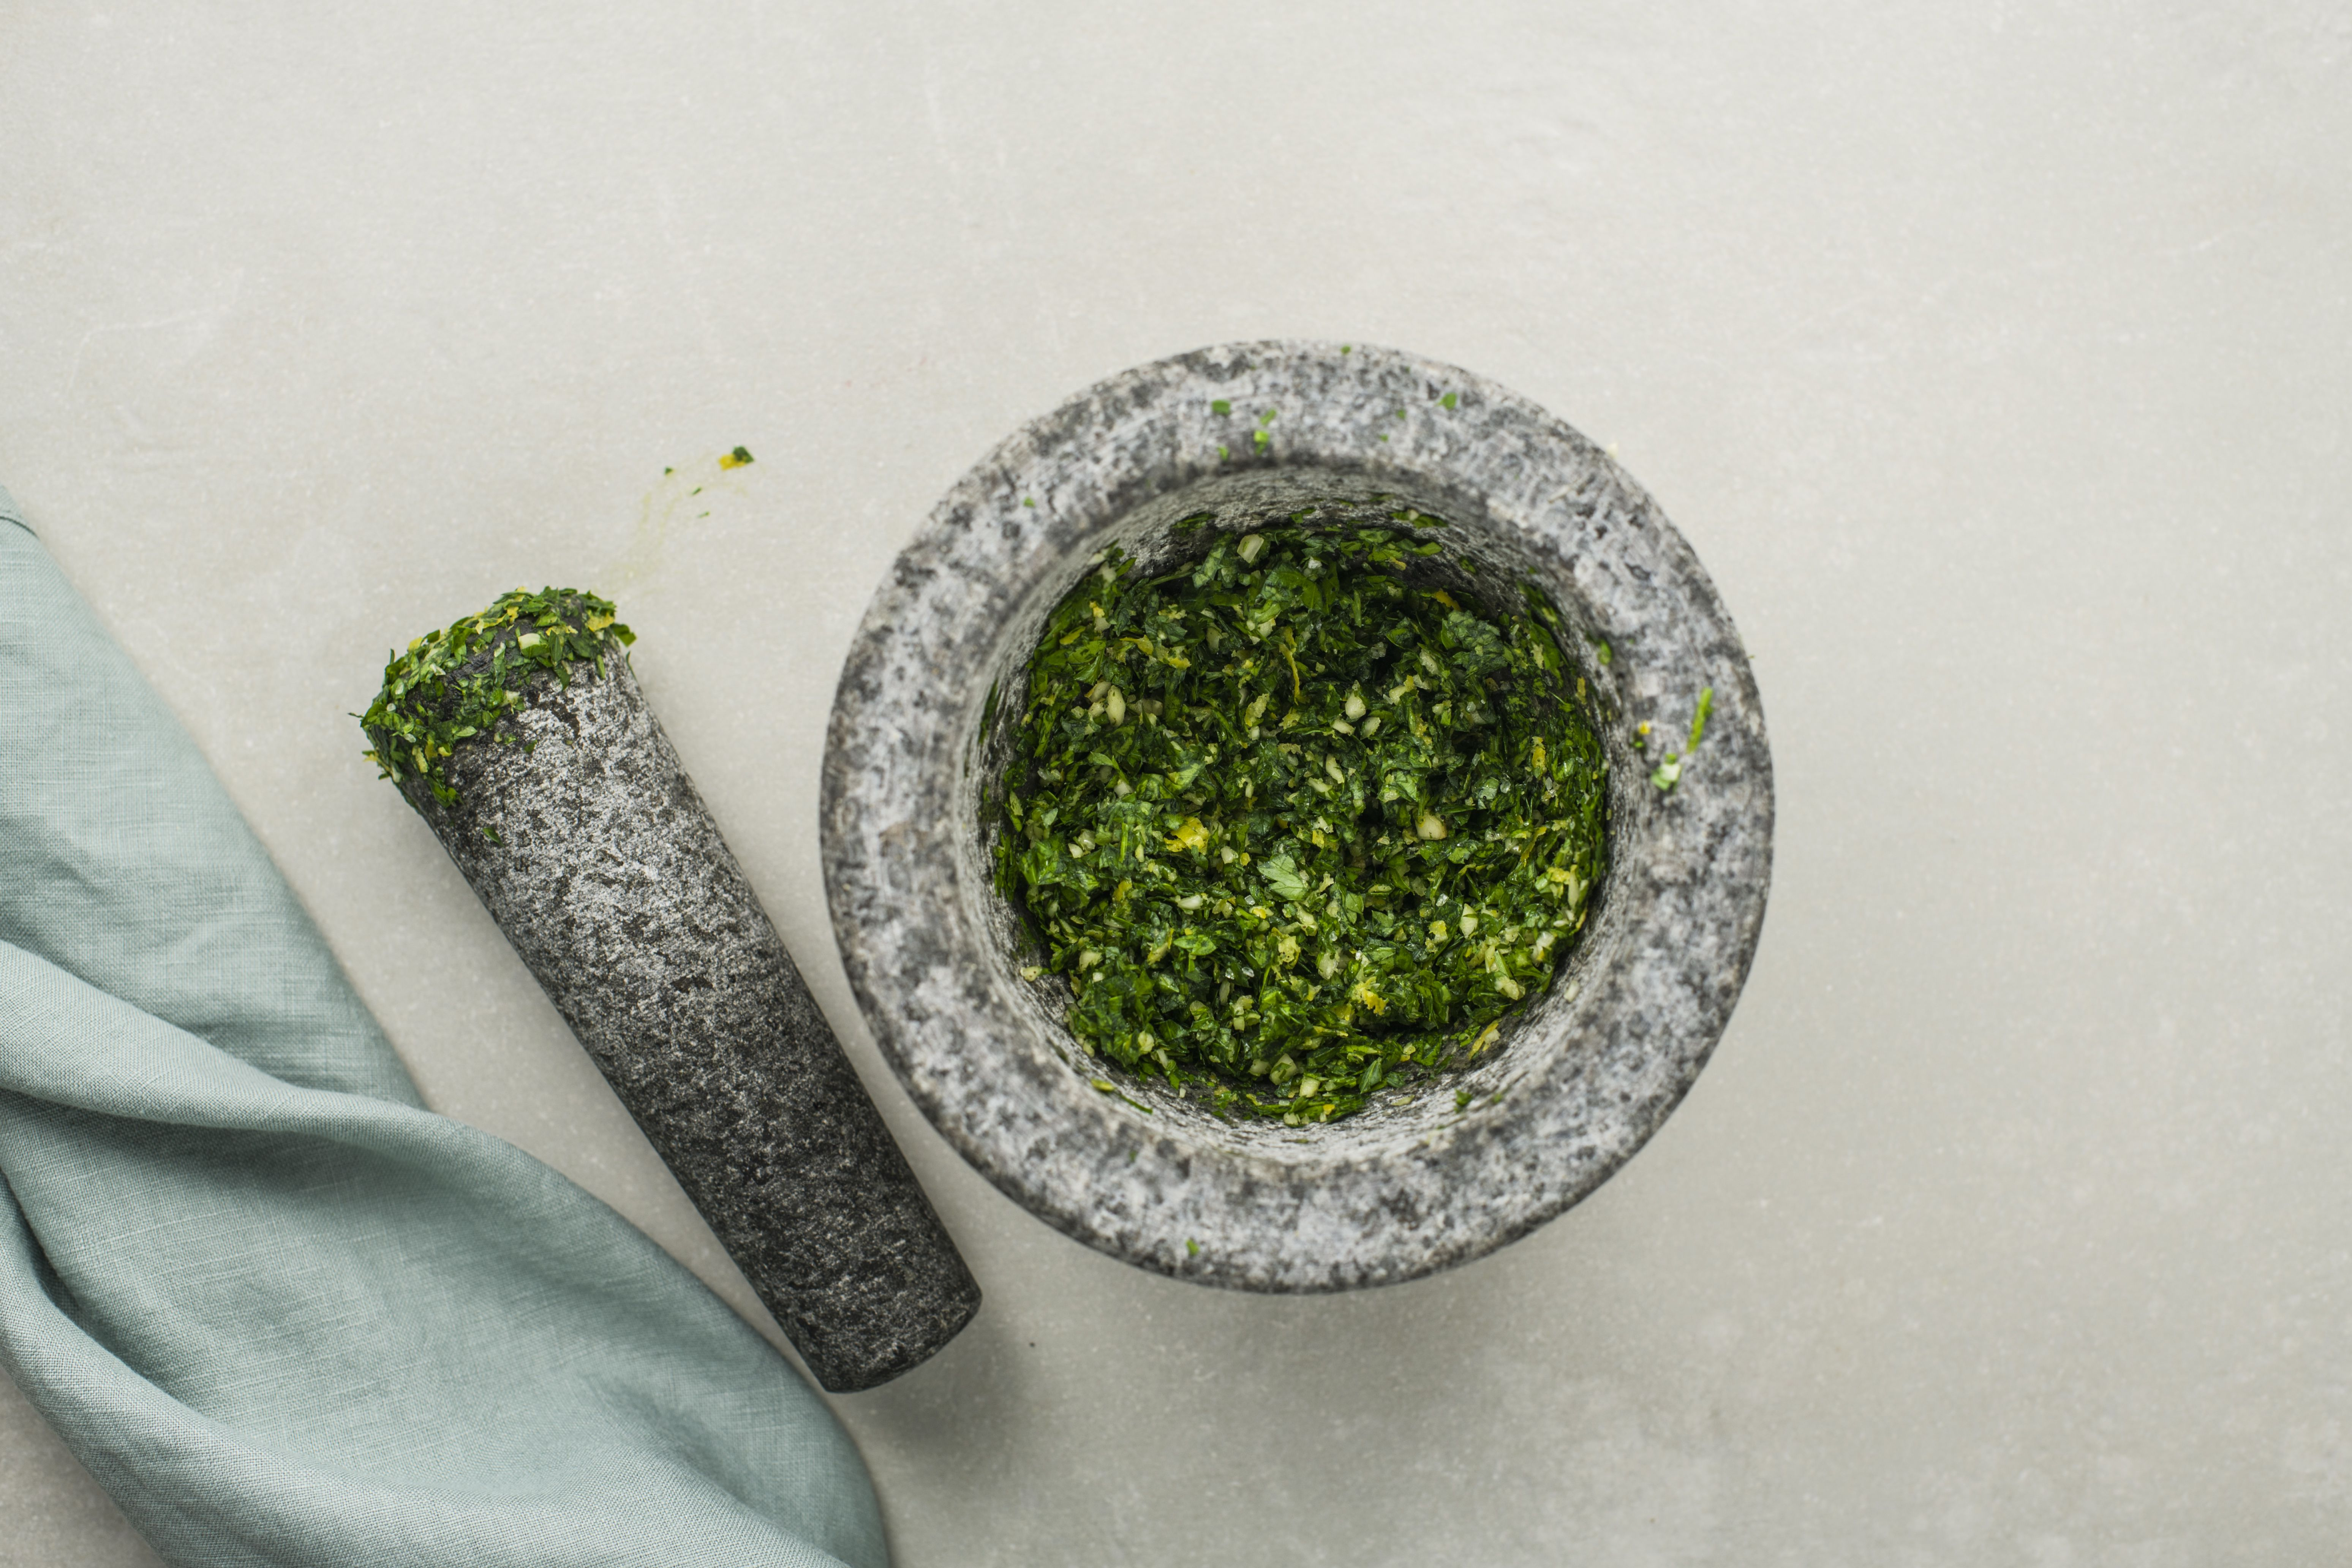 Use mortar and pestle